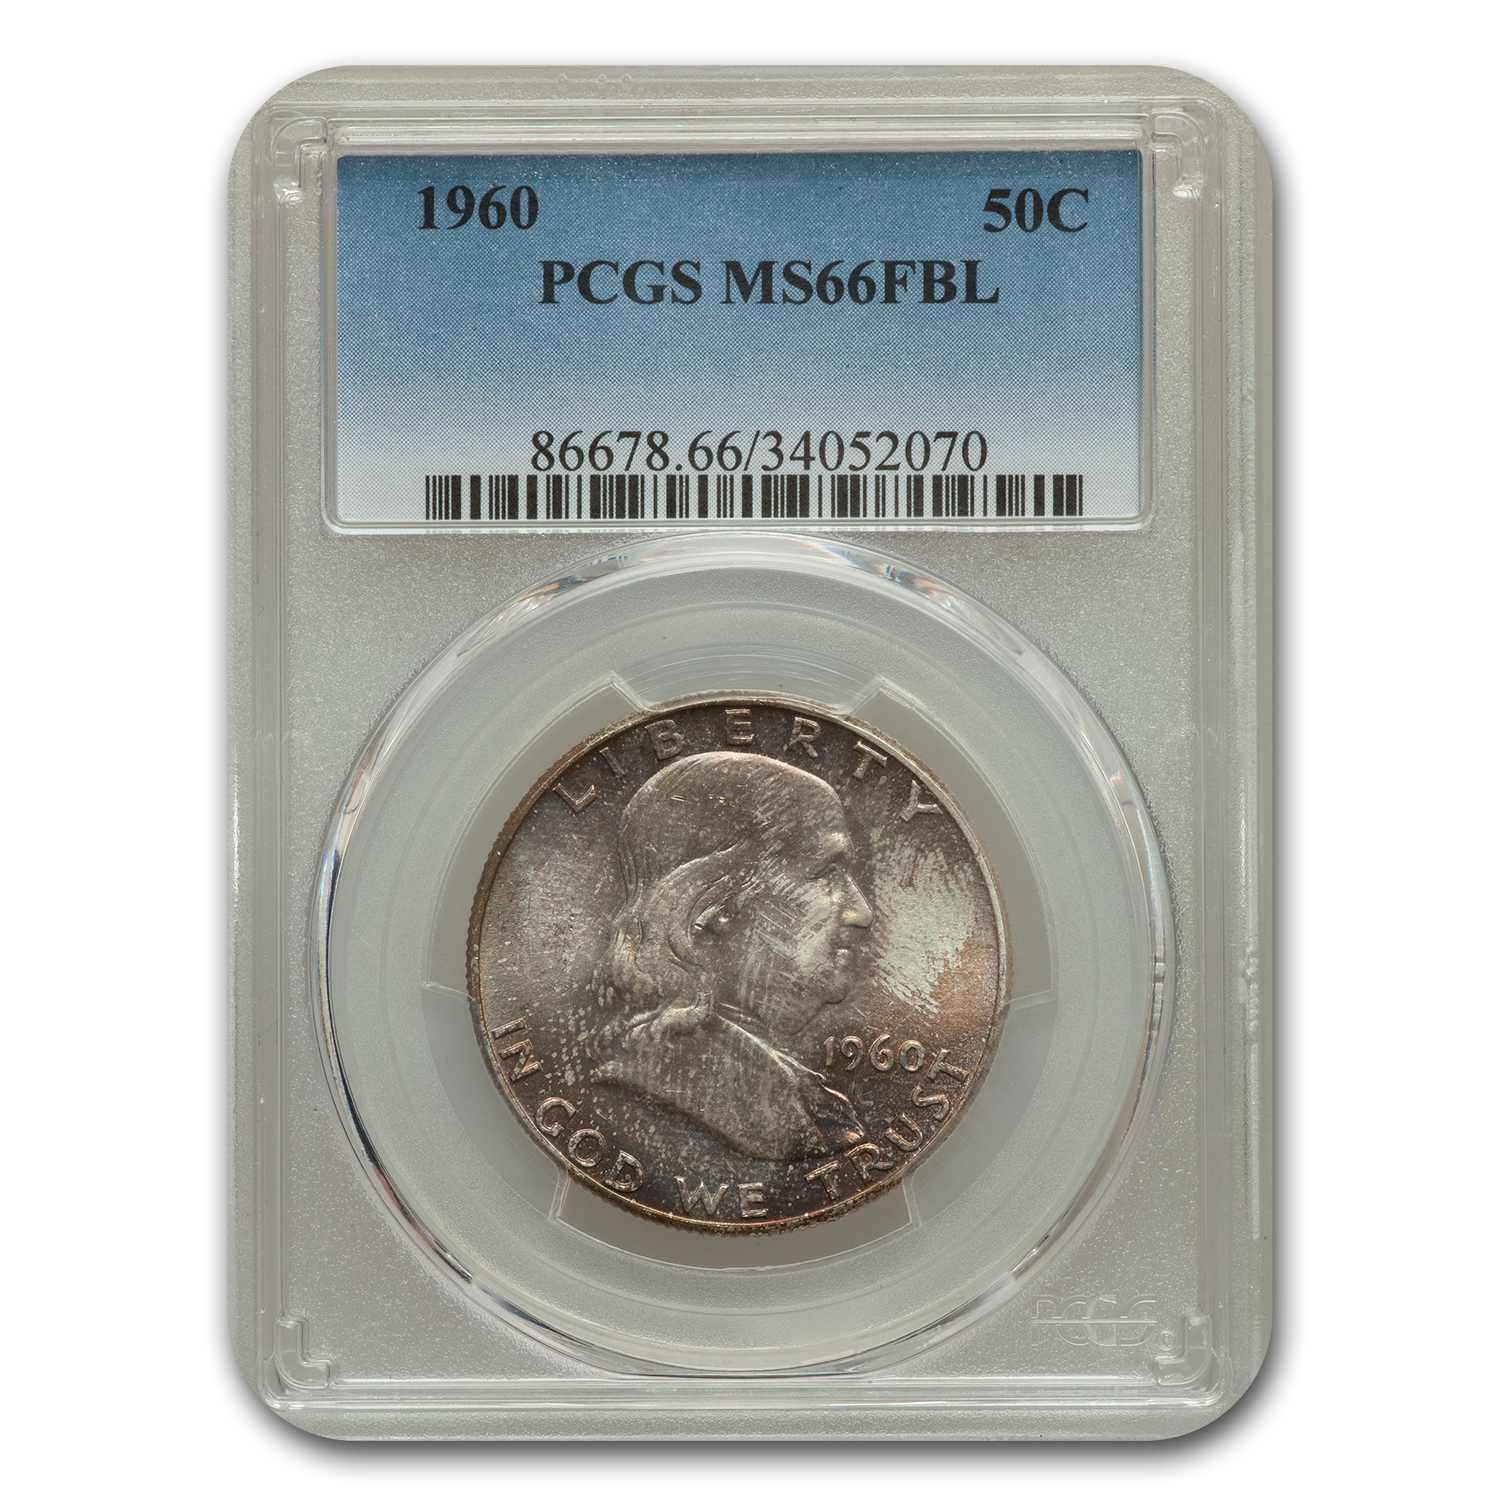 1960 Franklin Half Dollar MS-66 PCGS (FBL)